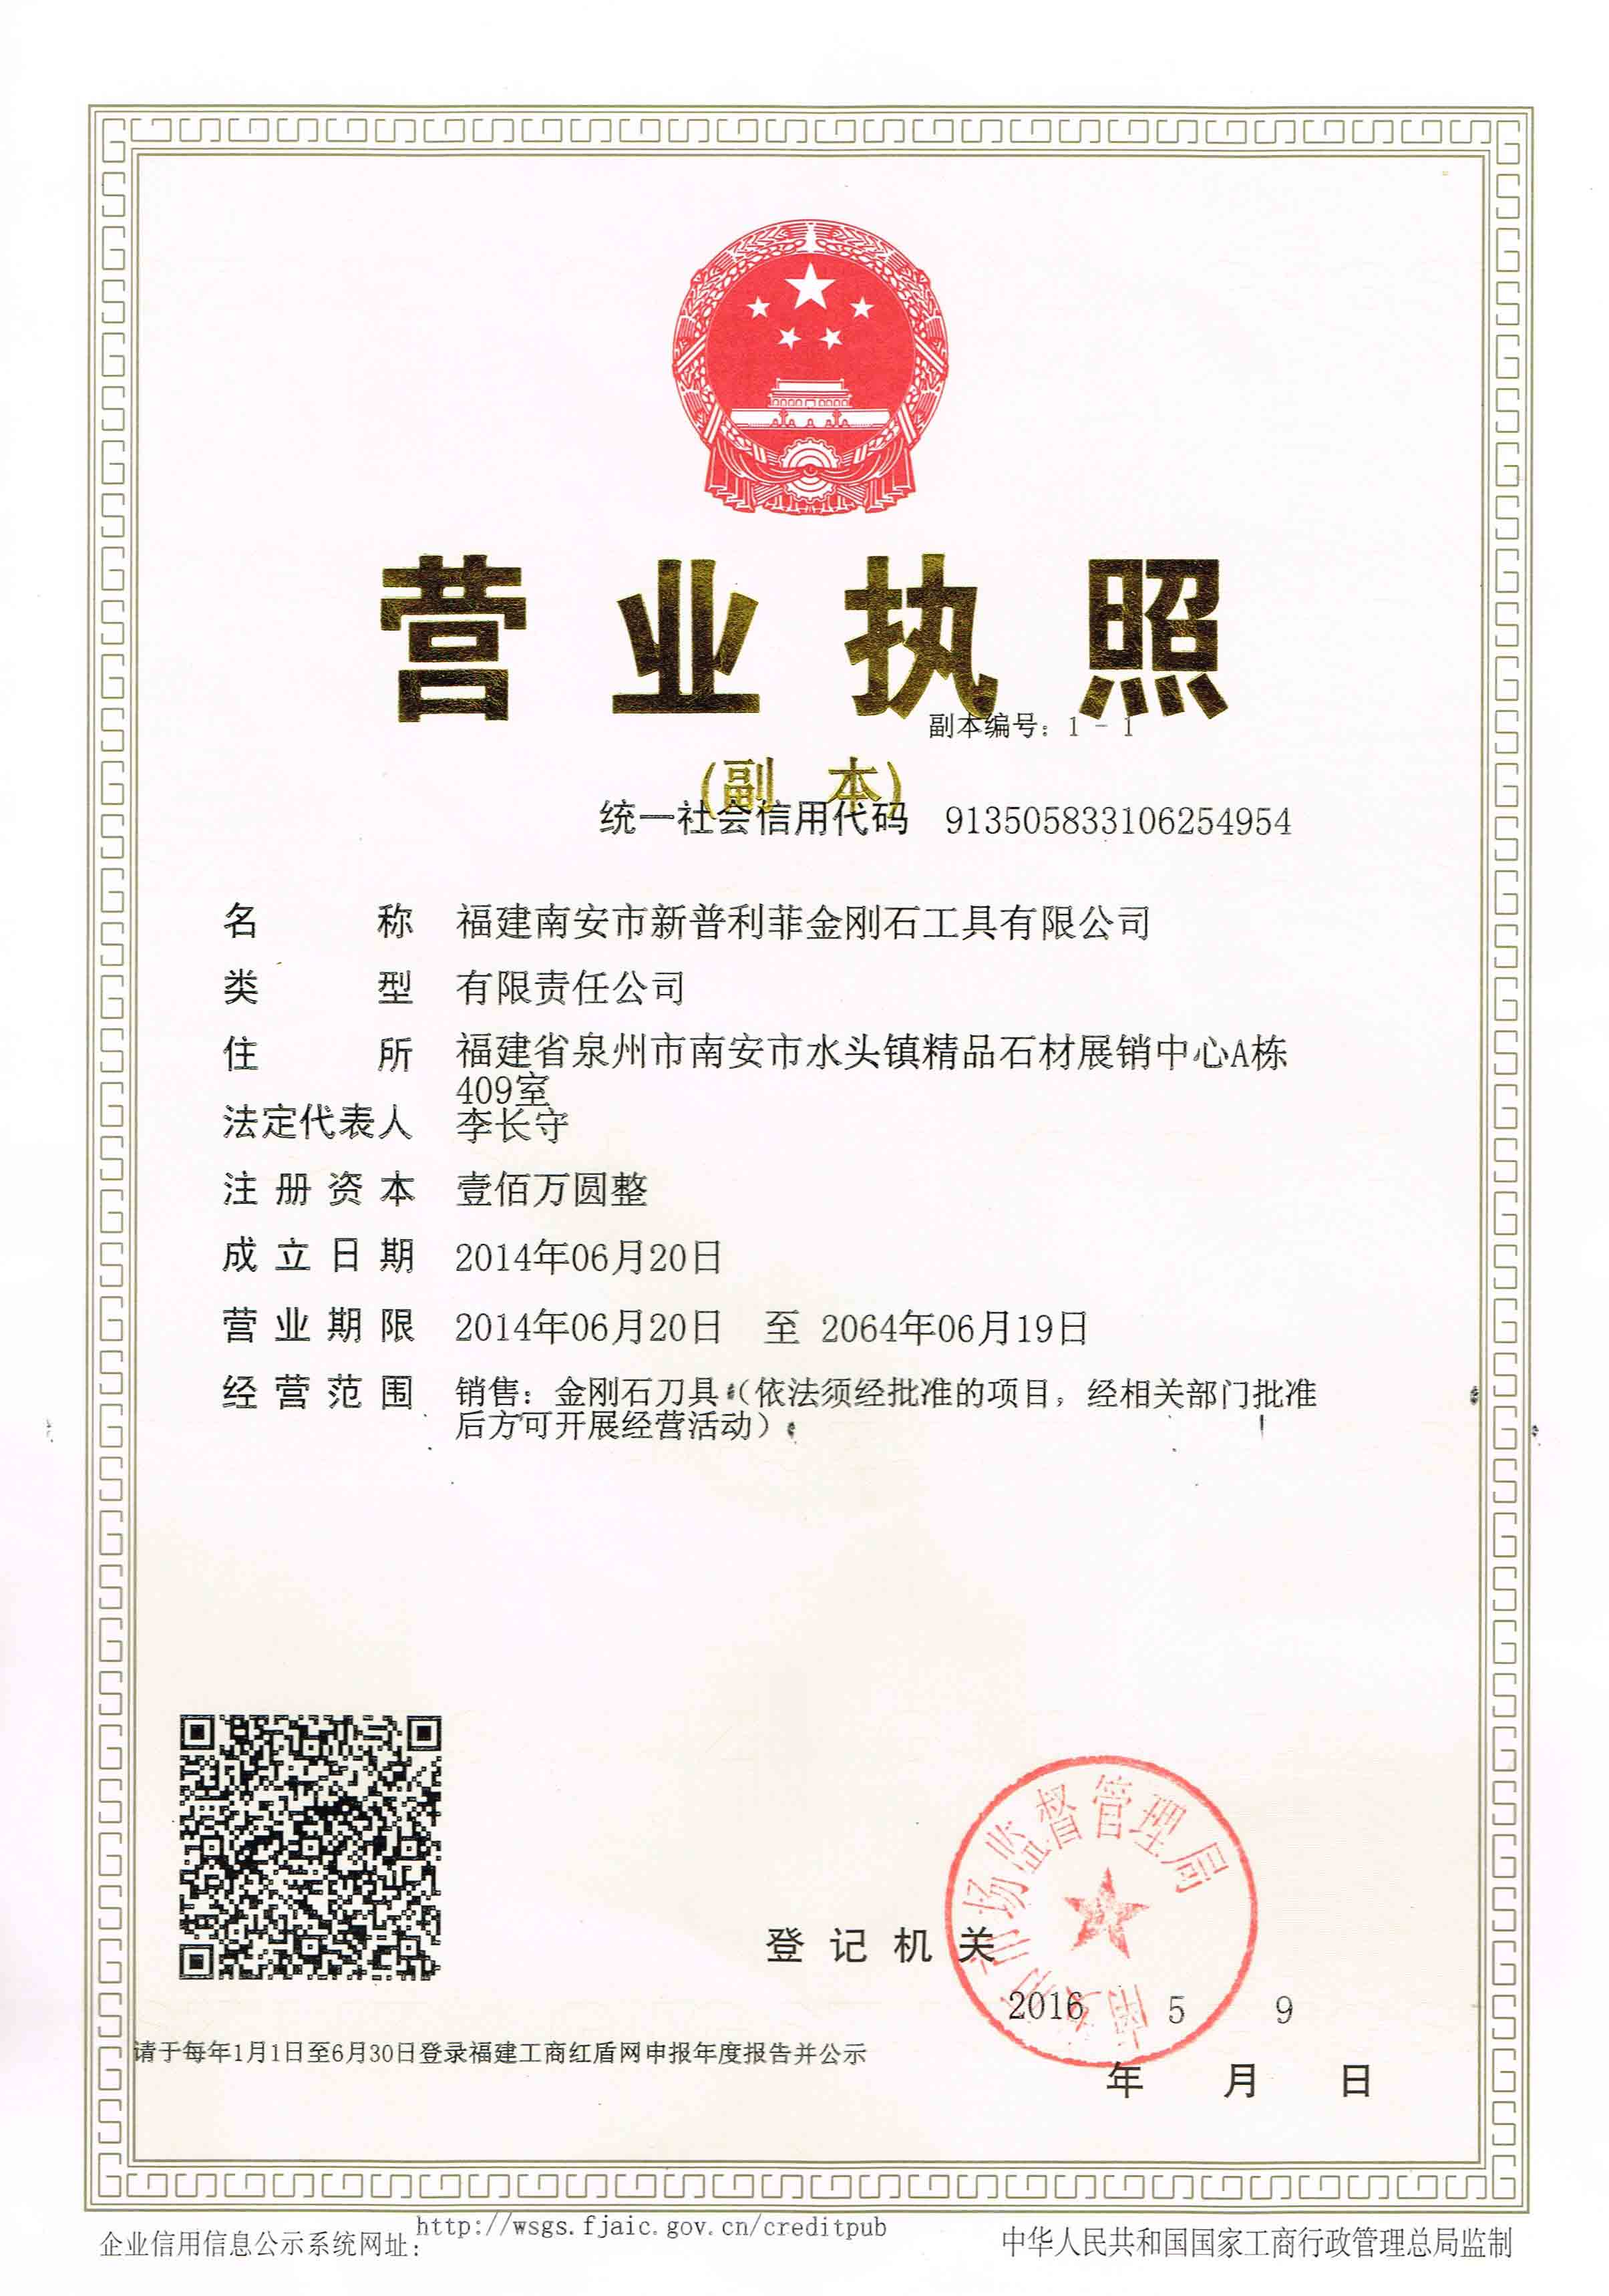 Pulifei Business Licence